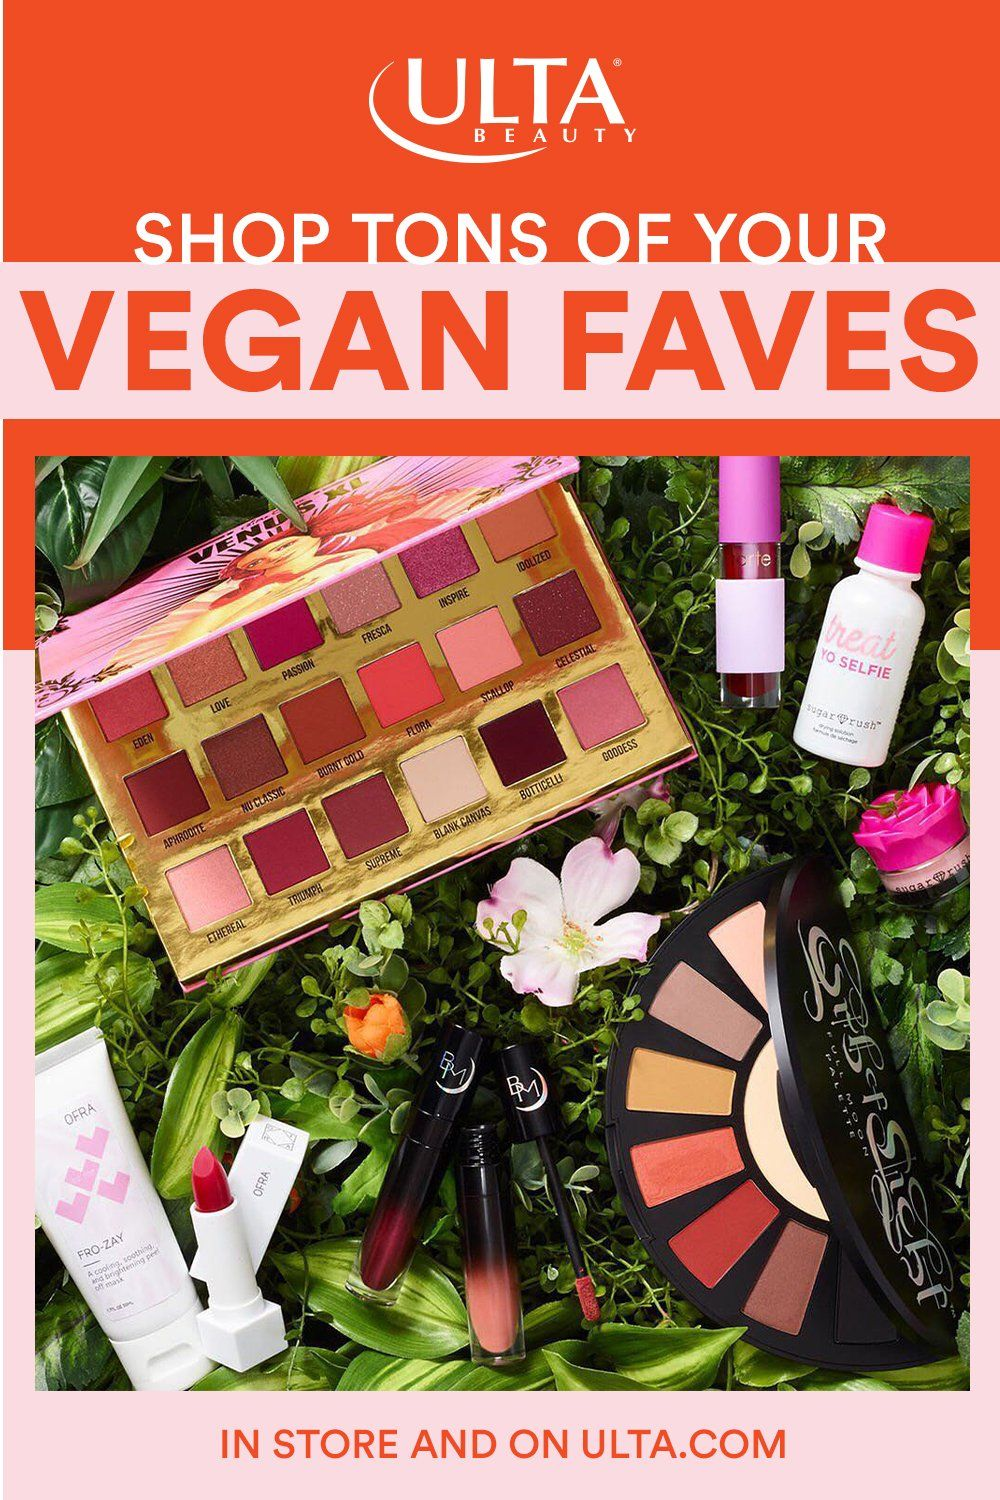 ICYMI we carry TONS of vegan faves for beauty you can feel